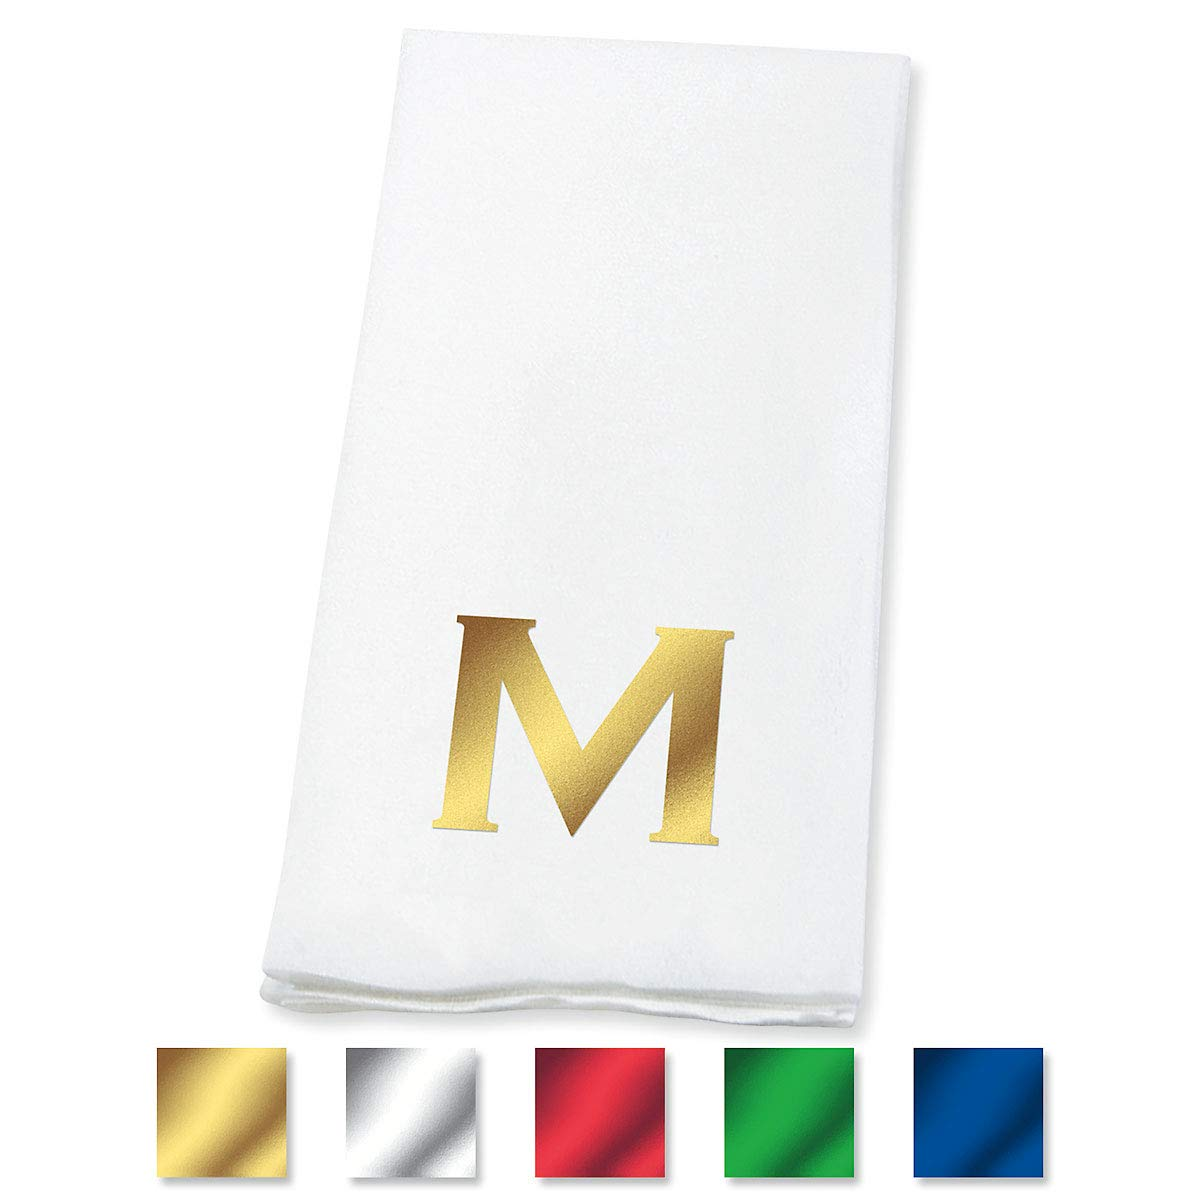 Lillian Vernon Copperplate Personalized Monogram Linen-Like Hand Towels (Set of 100)- 50% Cotton 50% Paper Blend, 13'' x 17'' Open and 4 1/2'' x 8 1/2'' Closed, Great for Weddings and Dinner Parties